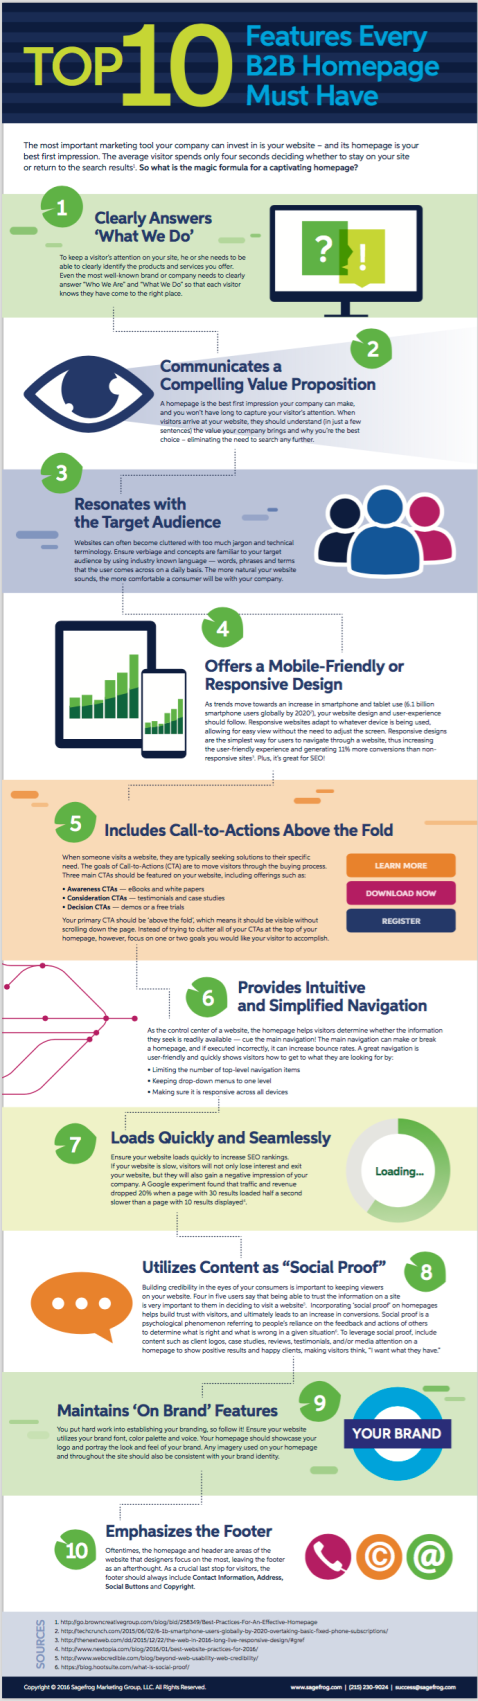 Top 10 Features Every B2B Website Homepage Must Have (Infographic)